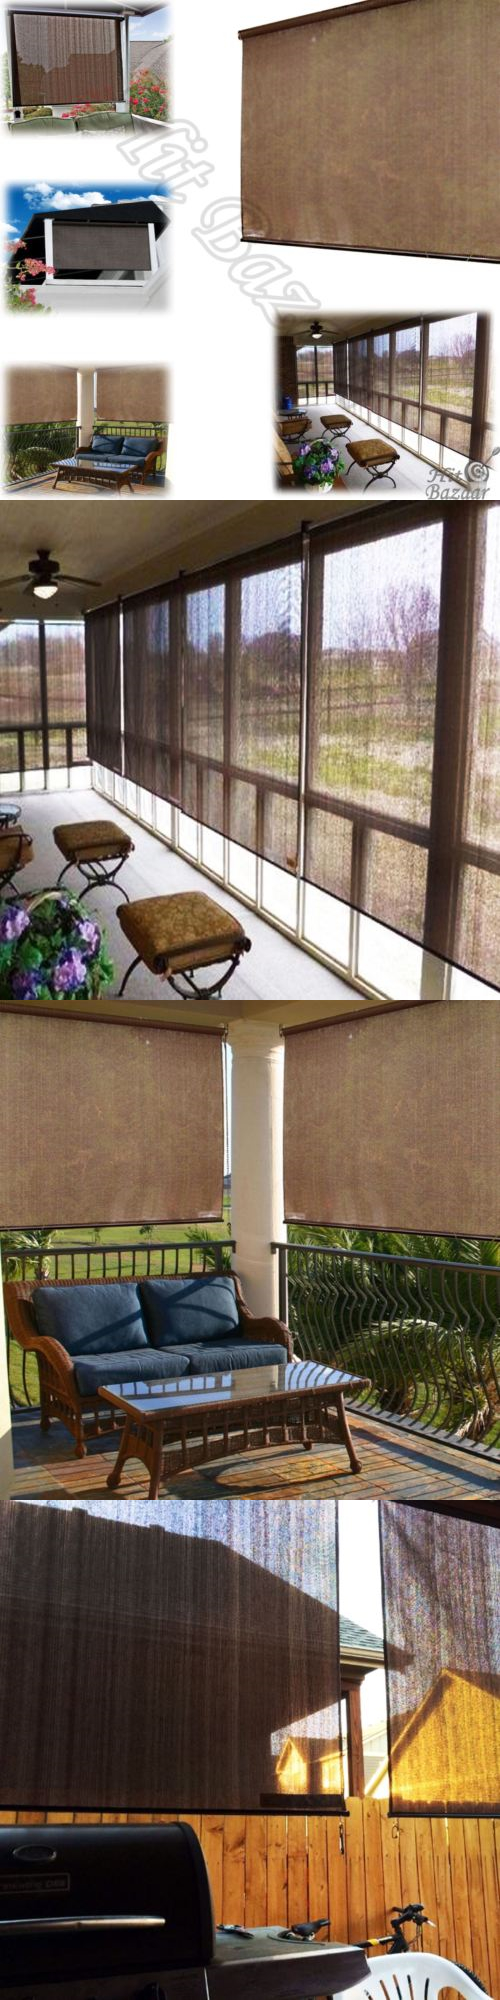 Blinds and shades rollup sun shades outdoor blinds window